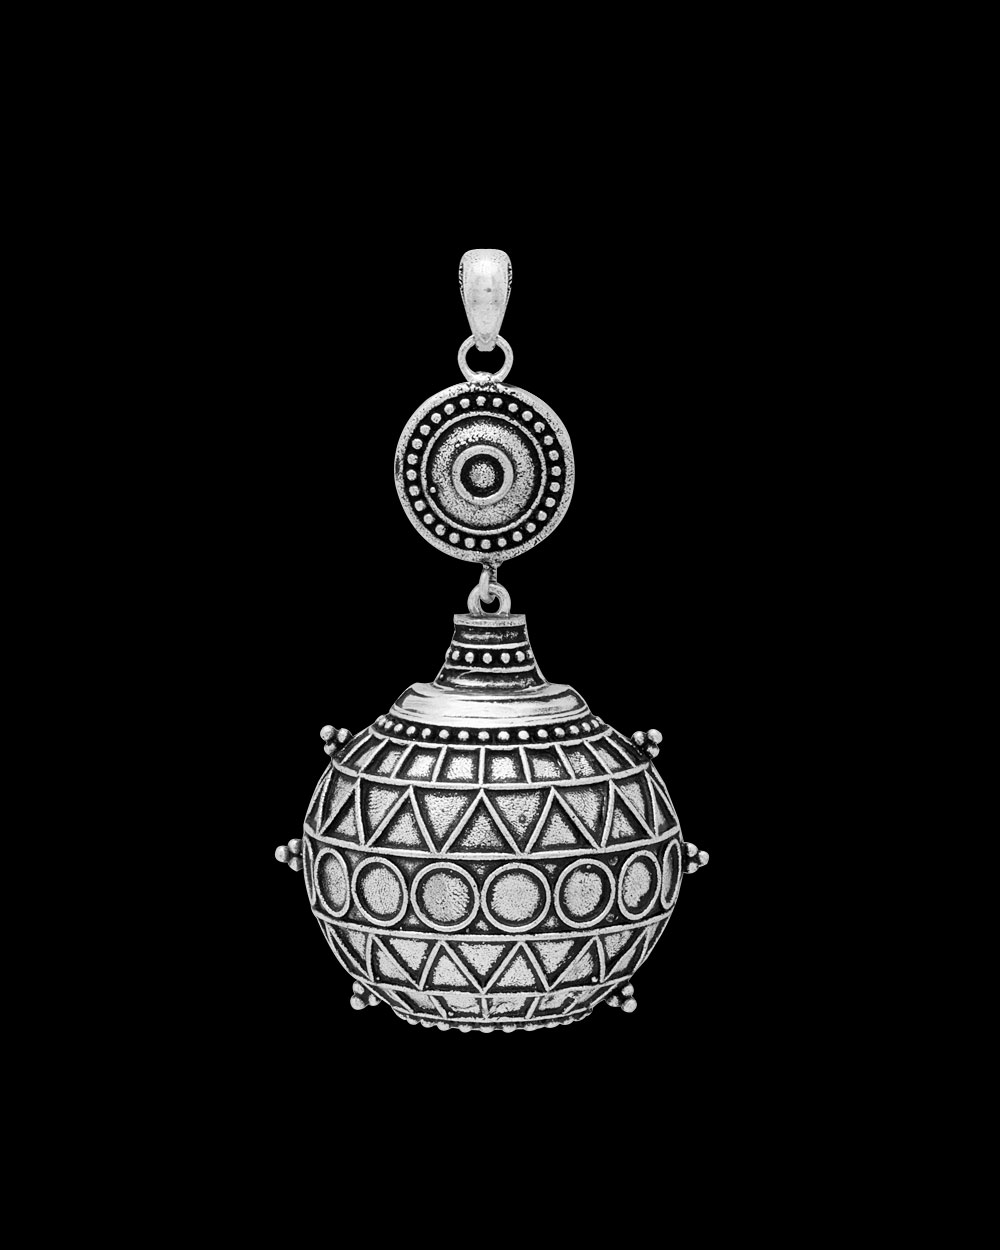 Classy traditional oxidised silver plated pendant without chain classy traditional oxidised silver plated pendant without chain aloadofball Image collections